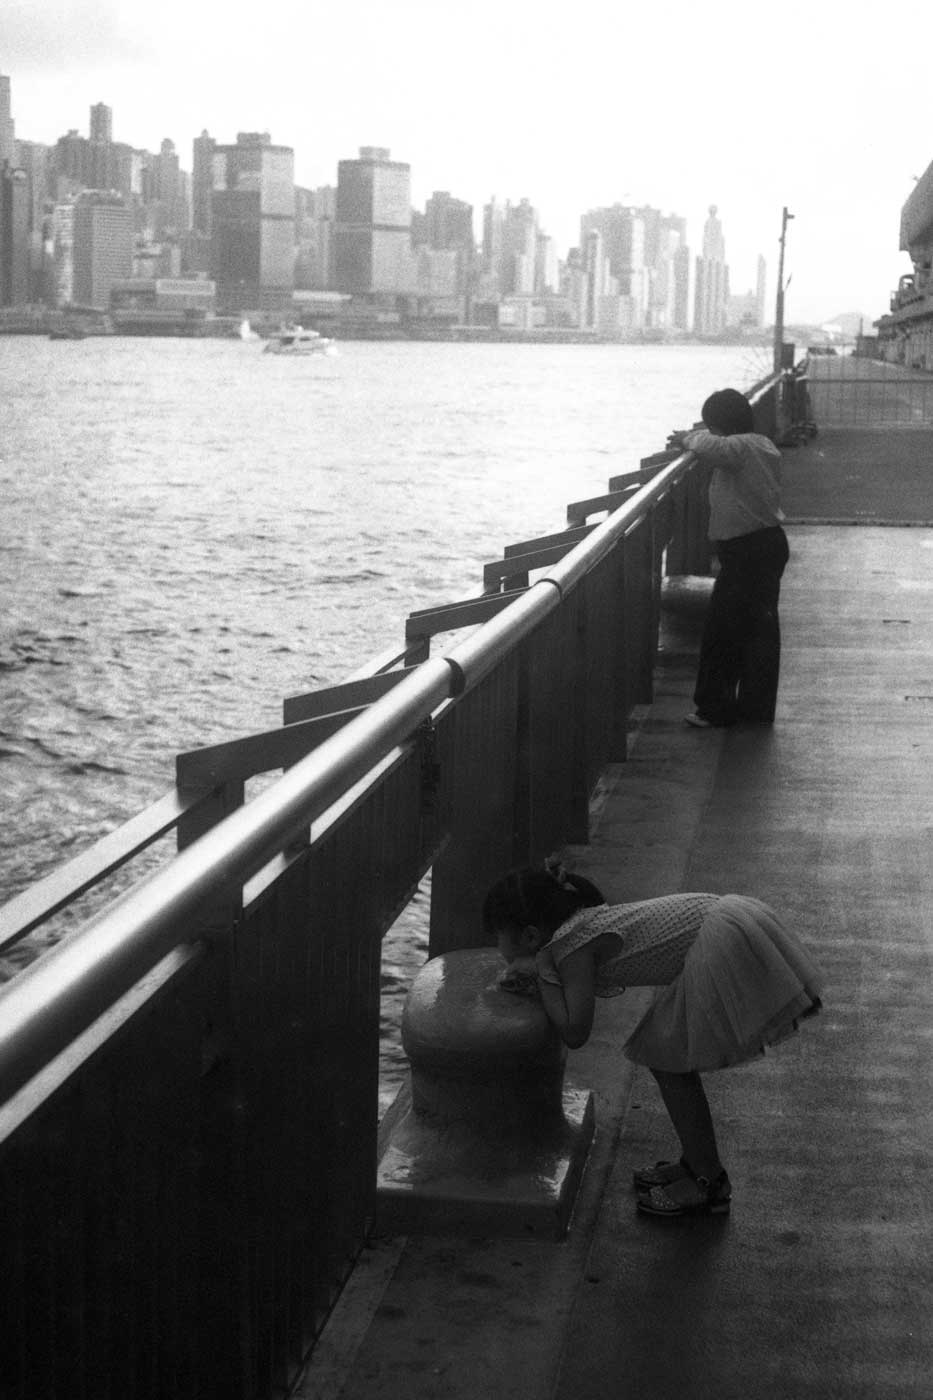 Leica-summicron-50mm-f2-50-f2.0-collapsible-v1-cron-lens-review-hk-hong-kong-harbour-front-girl-looking-through-the-gate-b&W-efke-100-film